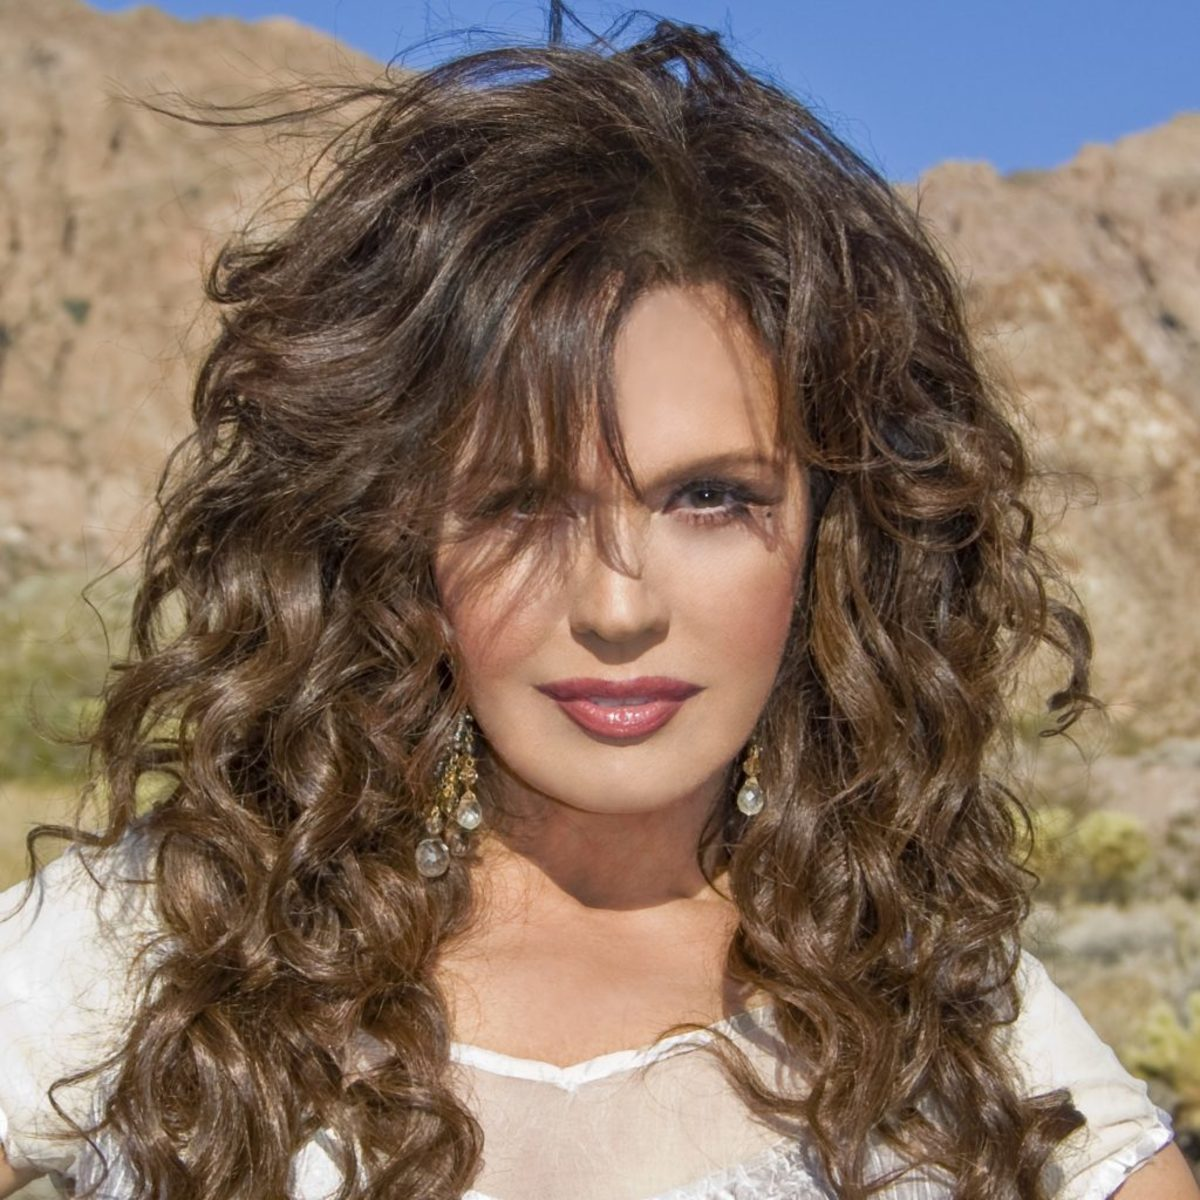 Marie Osmond has always been at the top of my list of beautiful and sexy women since the mid 1970s ... Oh, and she sings pretty good too.